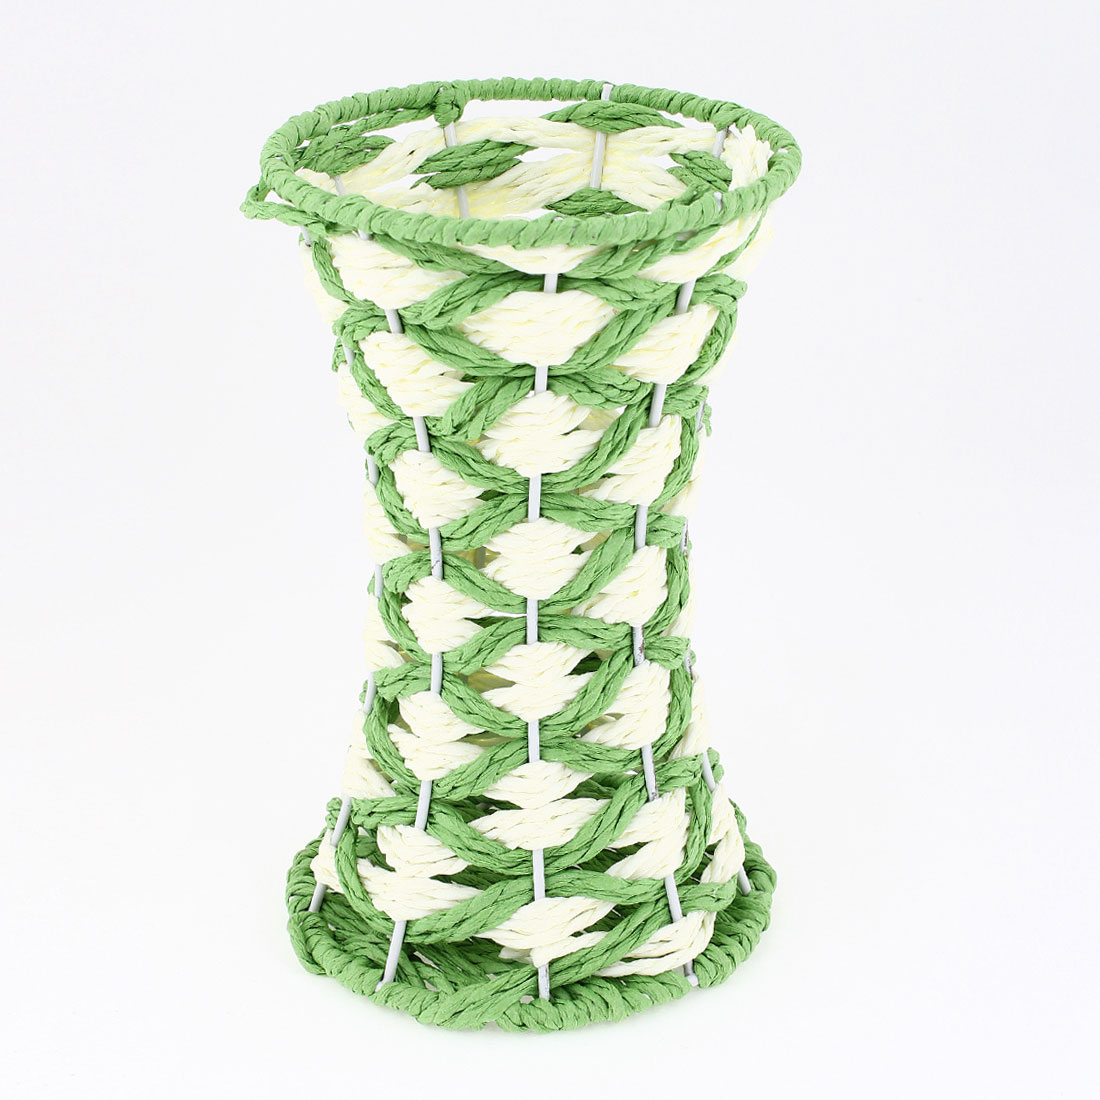 Household Lawn Green Braided Cord Hollow Out Vase Sundries Storage Basket Holder